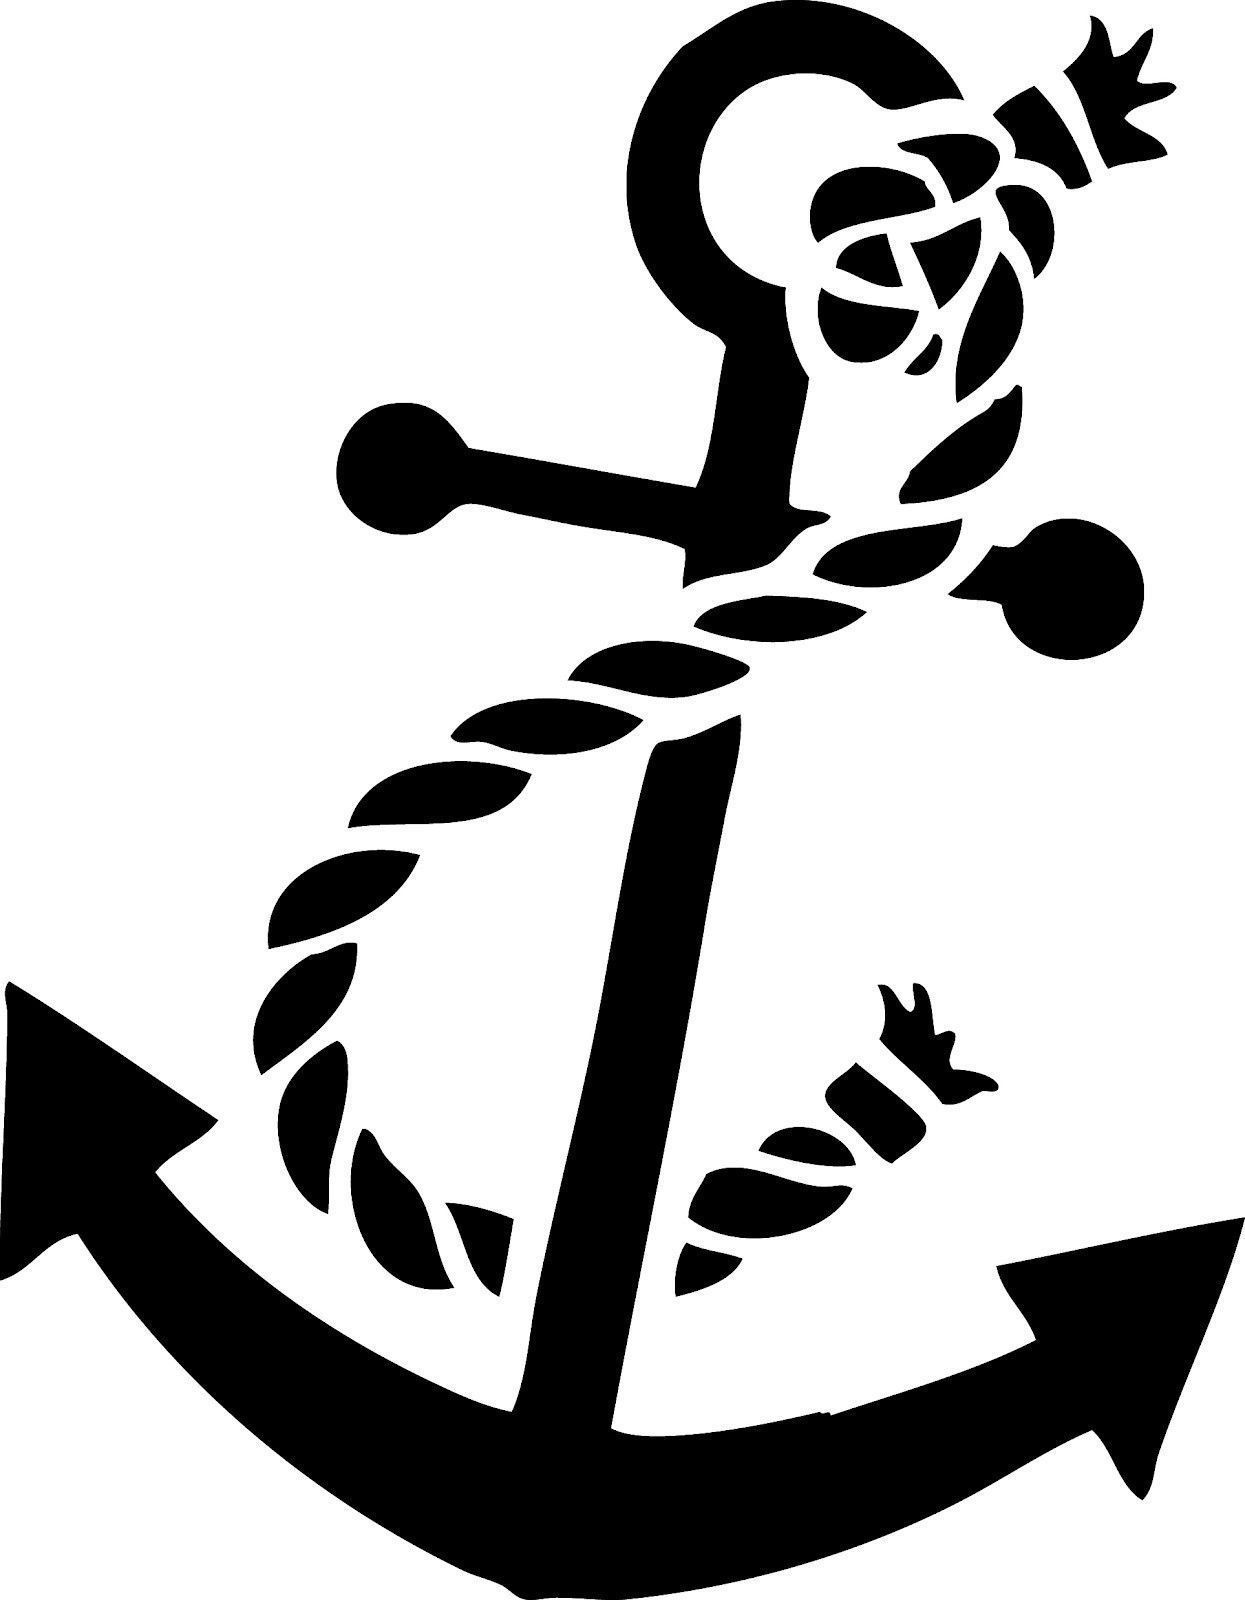 Details about anchor decal. Navy clipart stencil